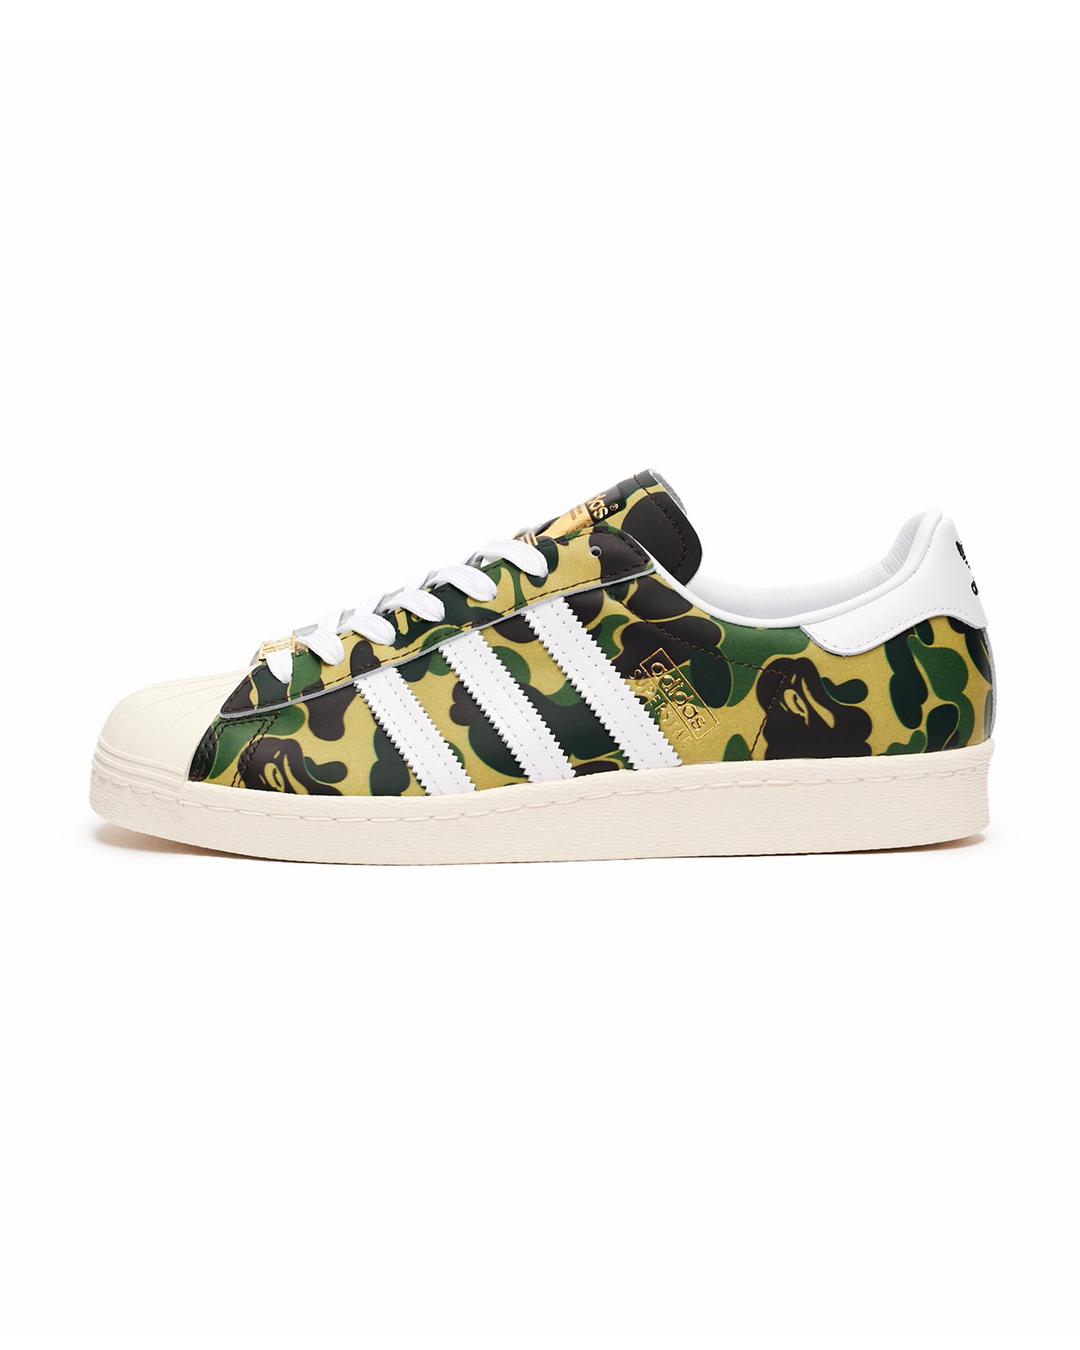 ADIDAS X A BATHING APE SUPERSTAR 80'S - GREEN CAMO, WHITE & OFF WHITE